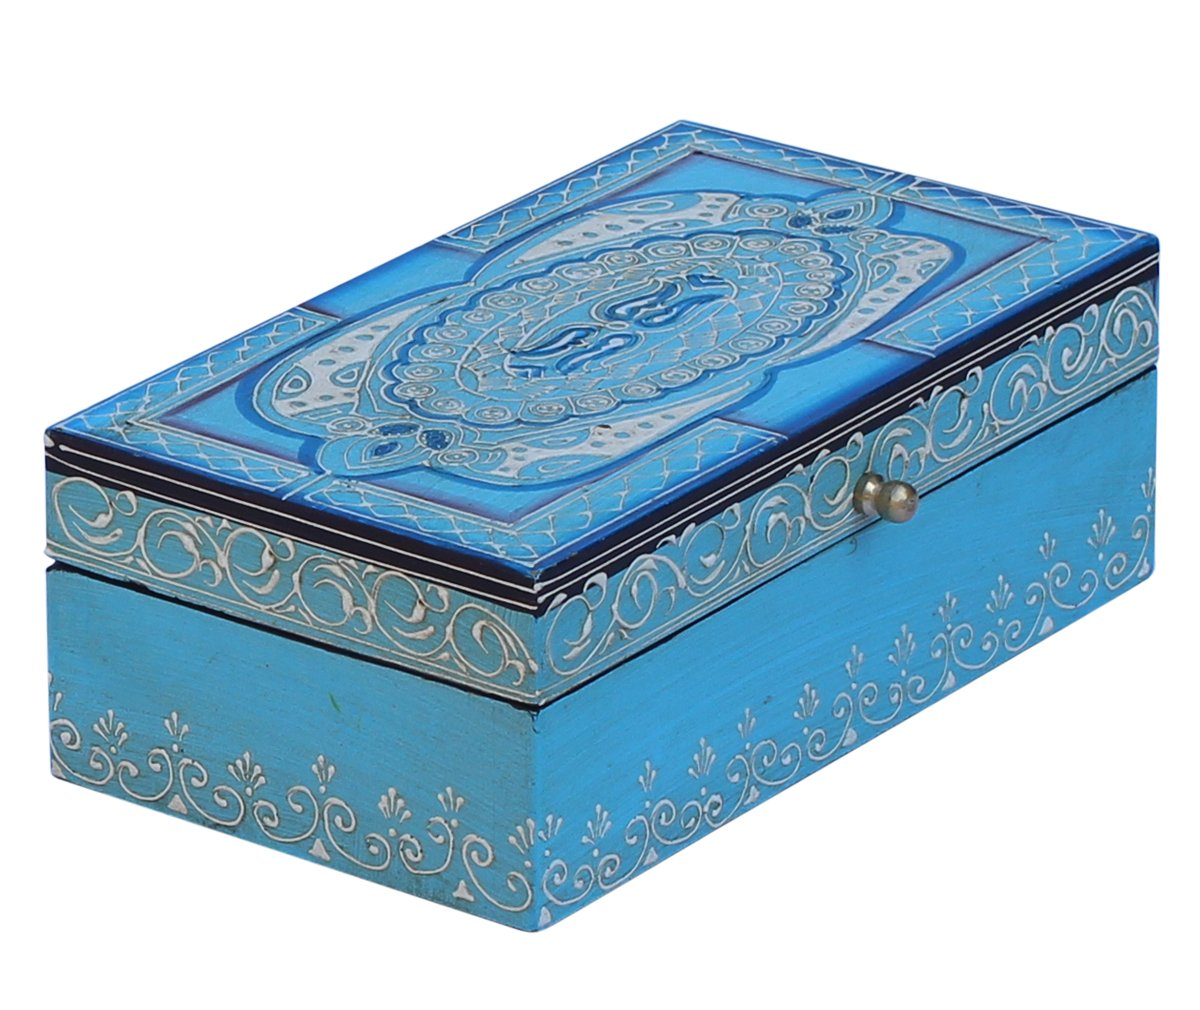 Turquoise Blue Decorative Box - SouvNear Jewelry Box Wooden Stylish Storage Keepsake Box